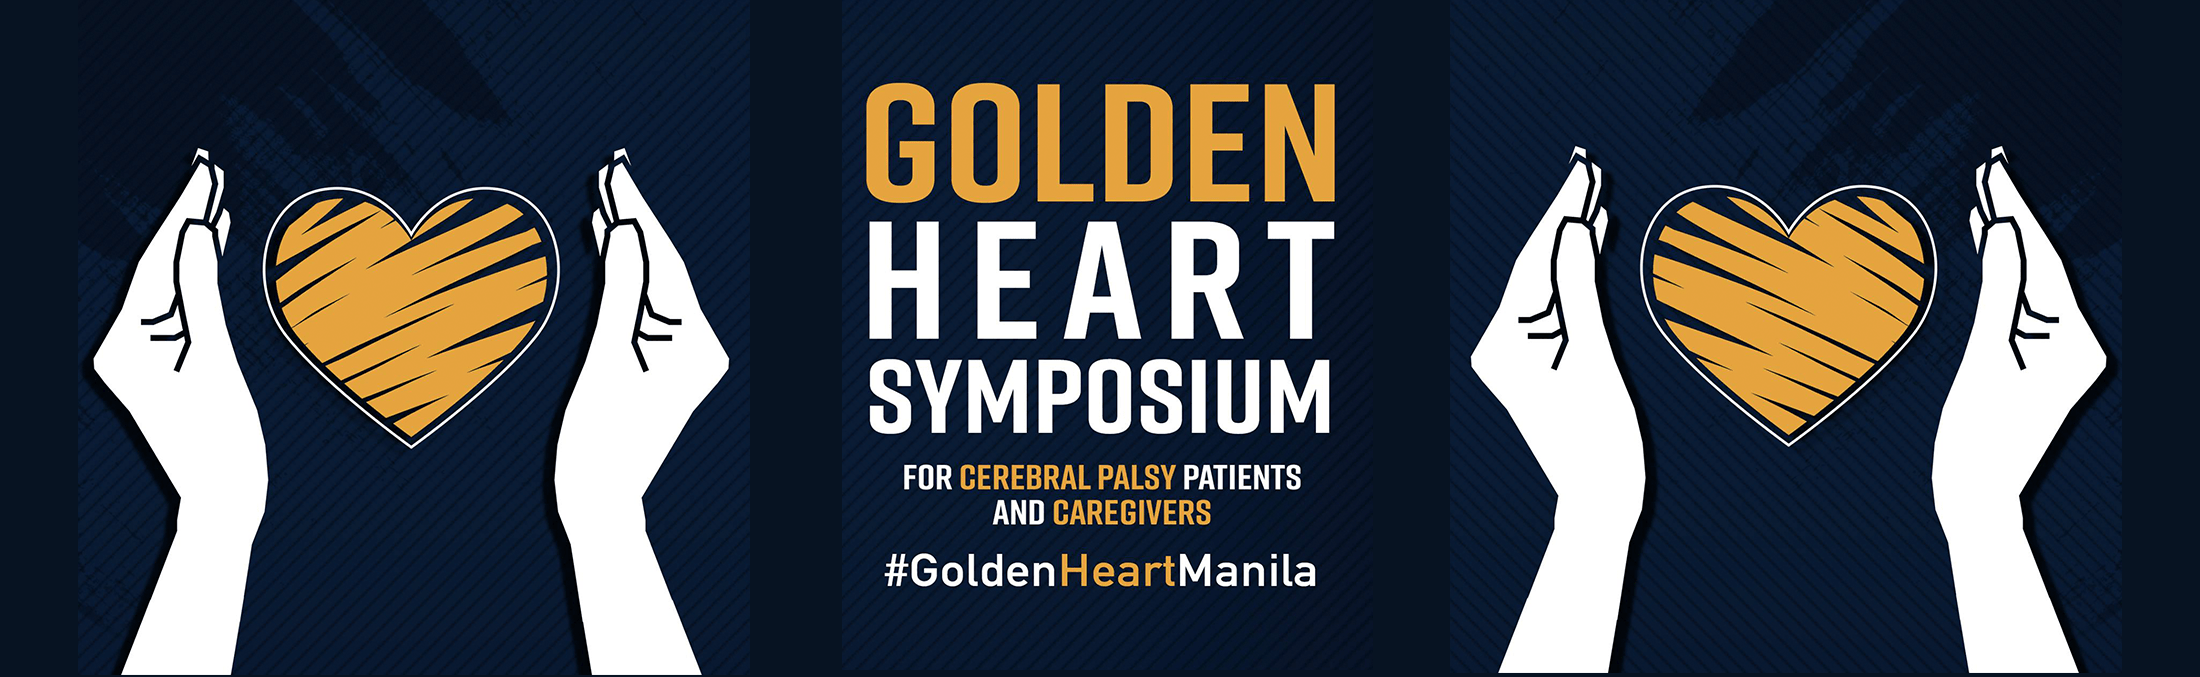 golden heart symposium banner